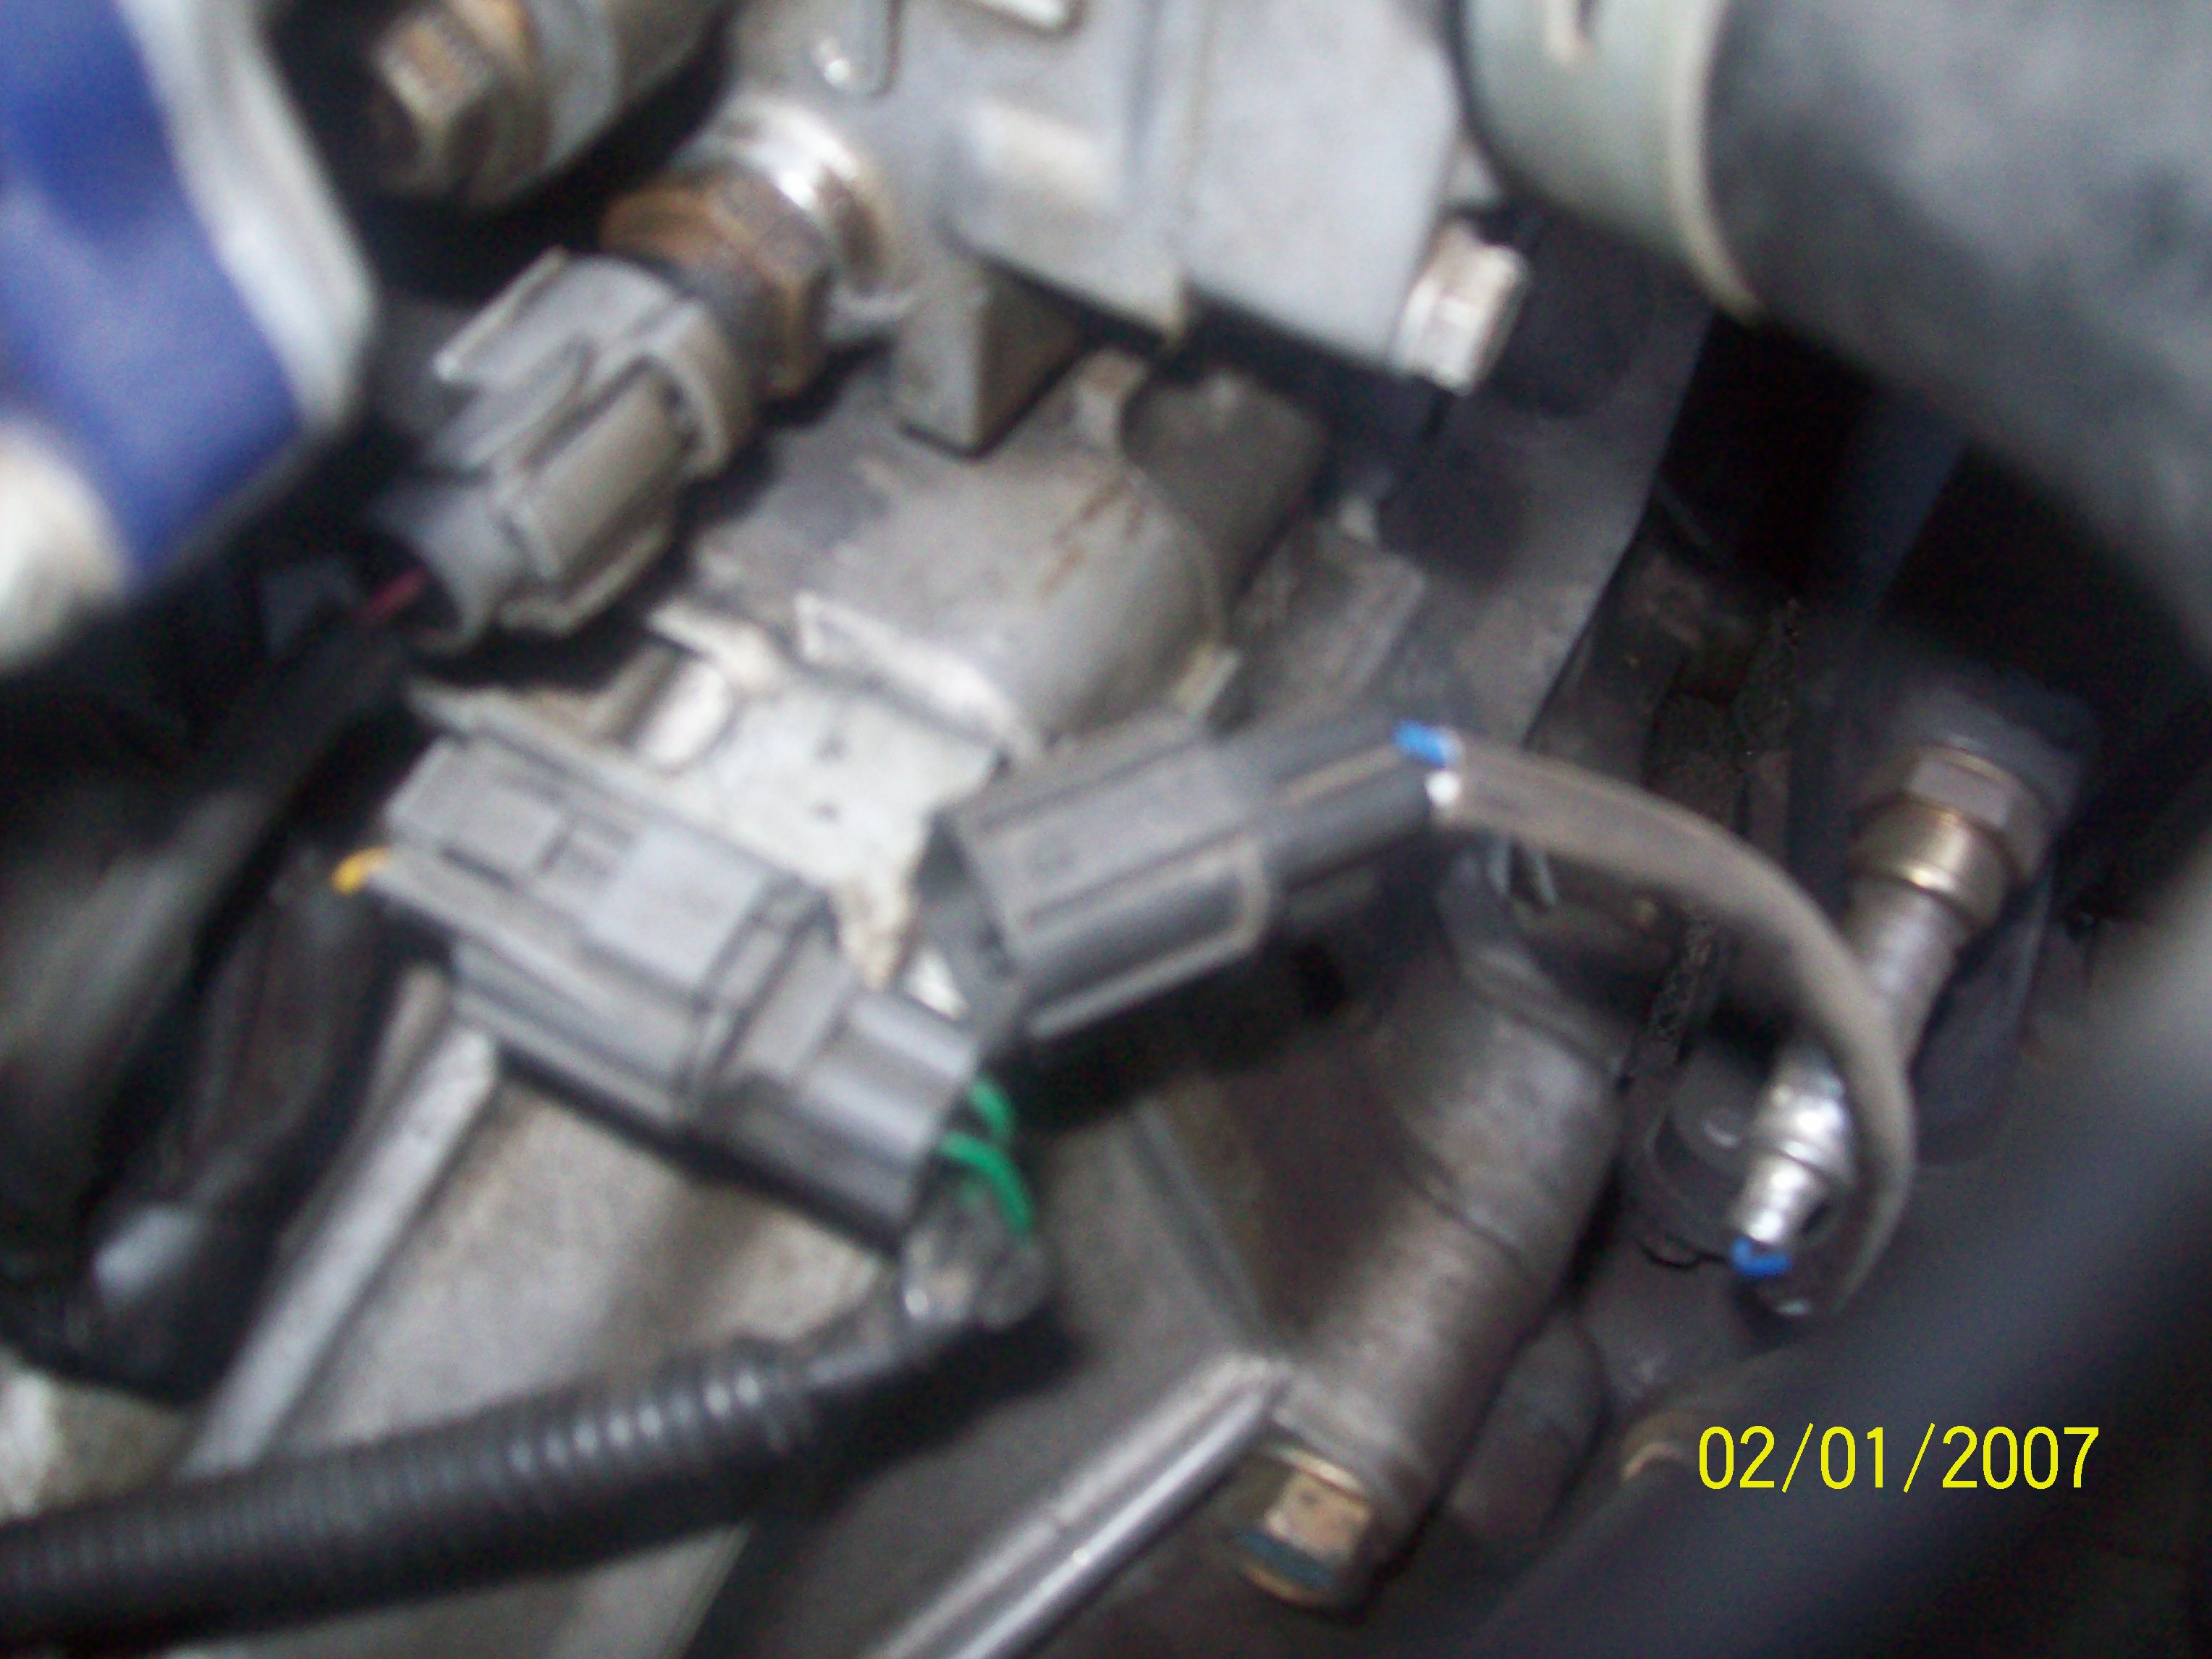 99 Civic Dx Coupe 5spd D16y7 To D16y8 Swap Honda O2 Sensor Wiring Diagram Click Image For Larger Version Name 112 0120 Views 27830 Size 7537